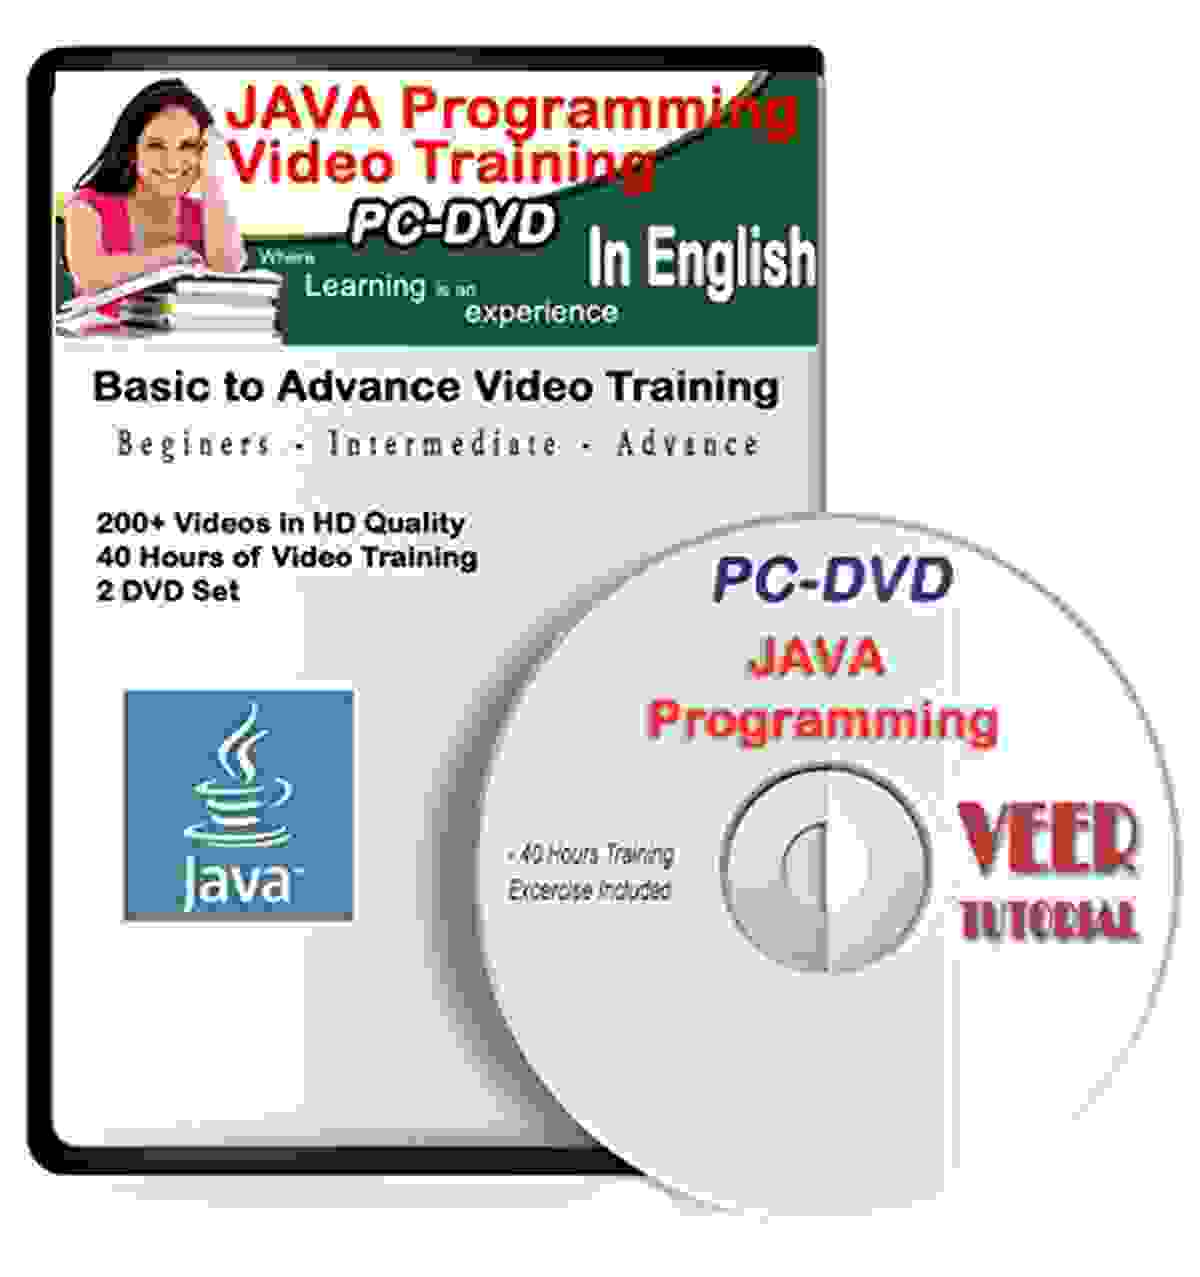 Java Learning Tutorial | Java Programming Tutorial Video Price 23 Apr 2021 Java Learning Video online shop - HelpingIndia